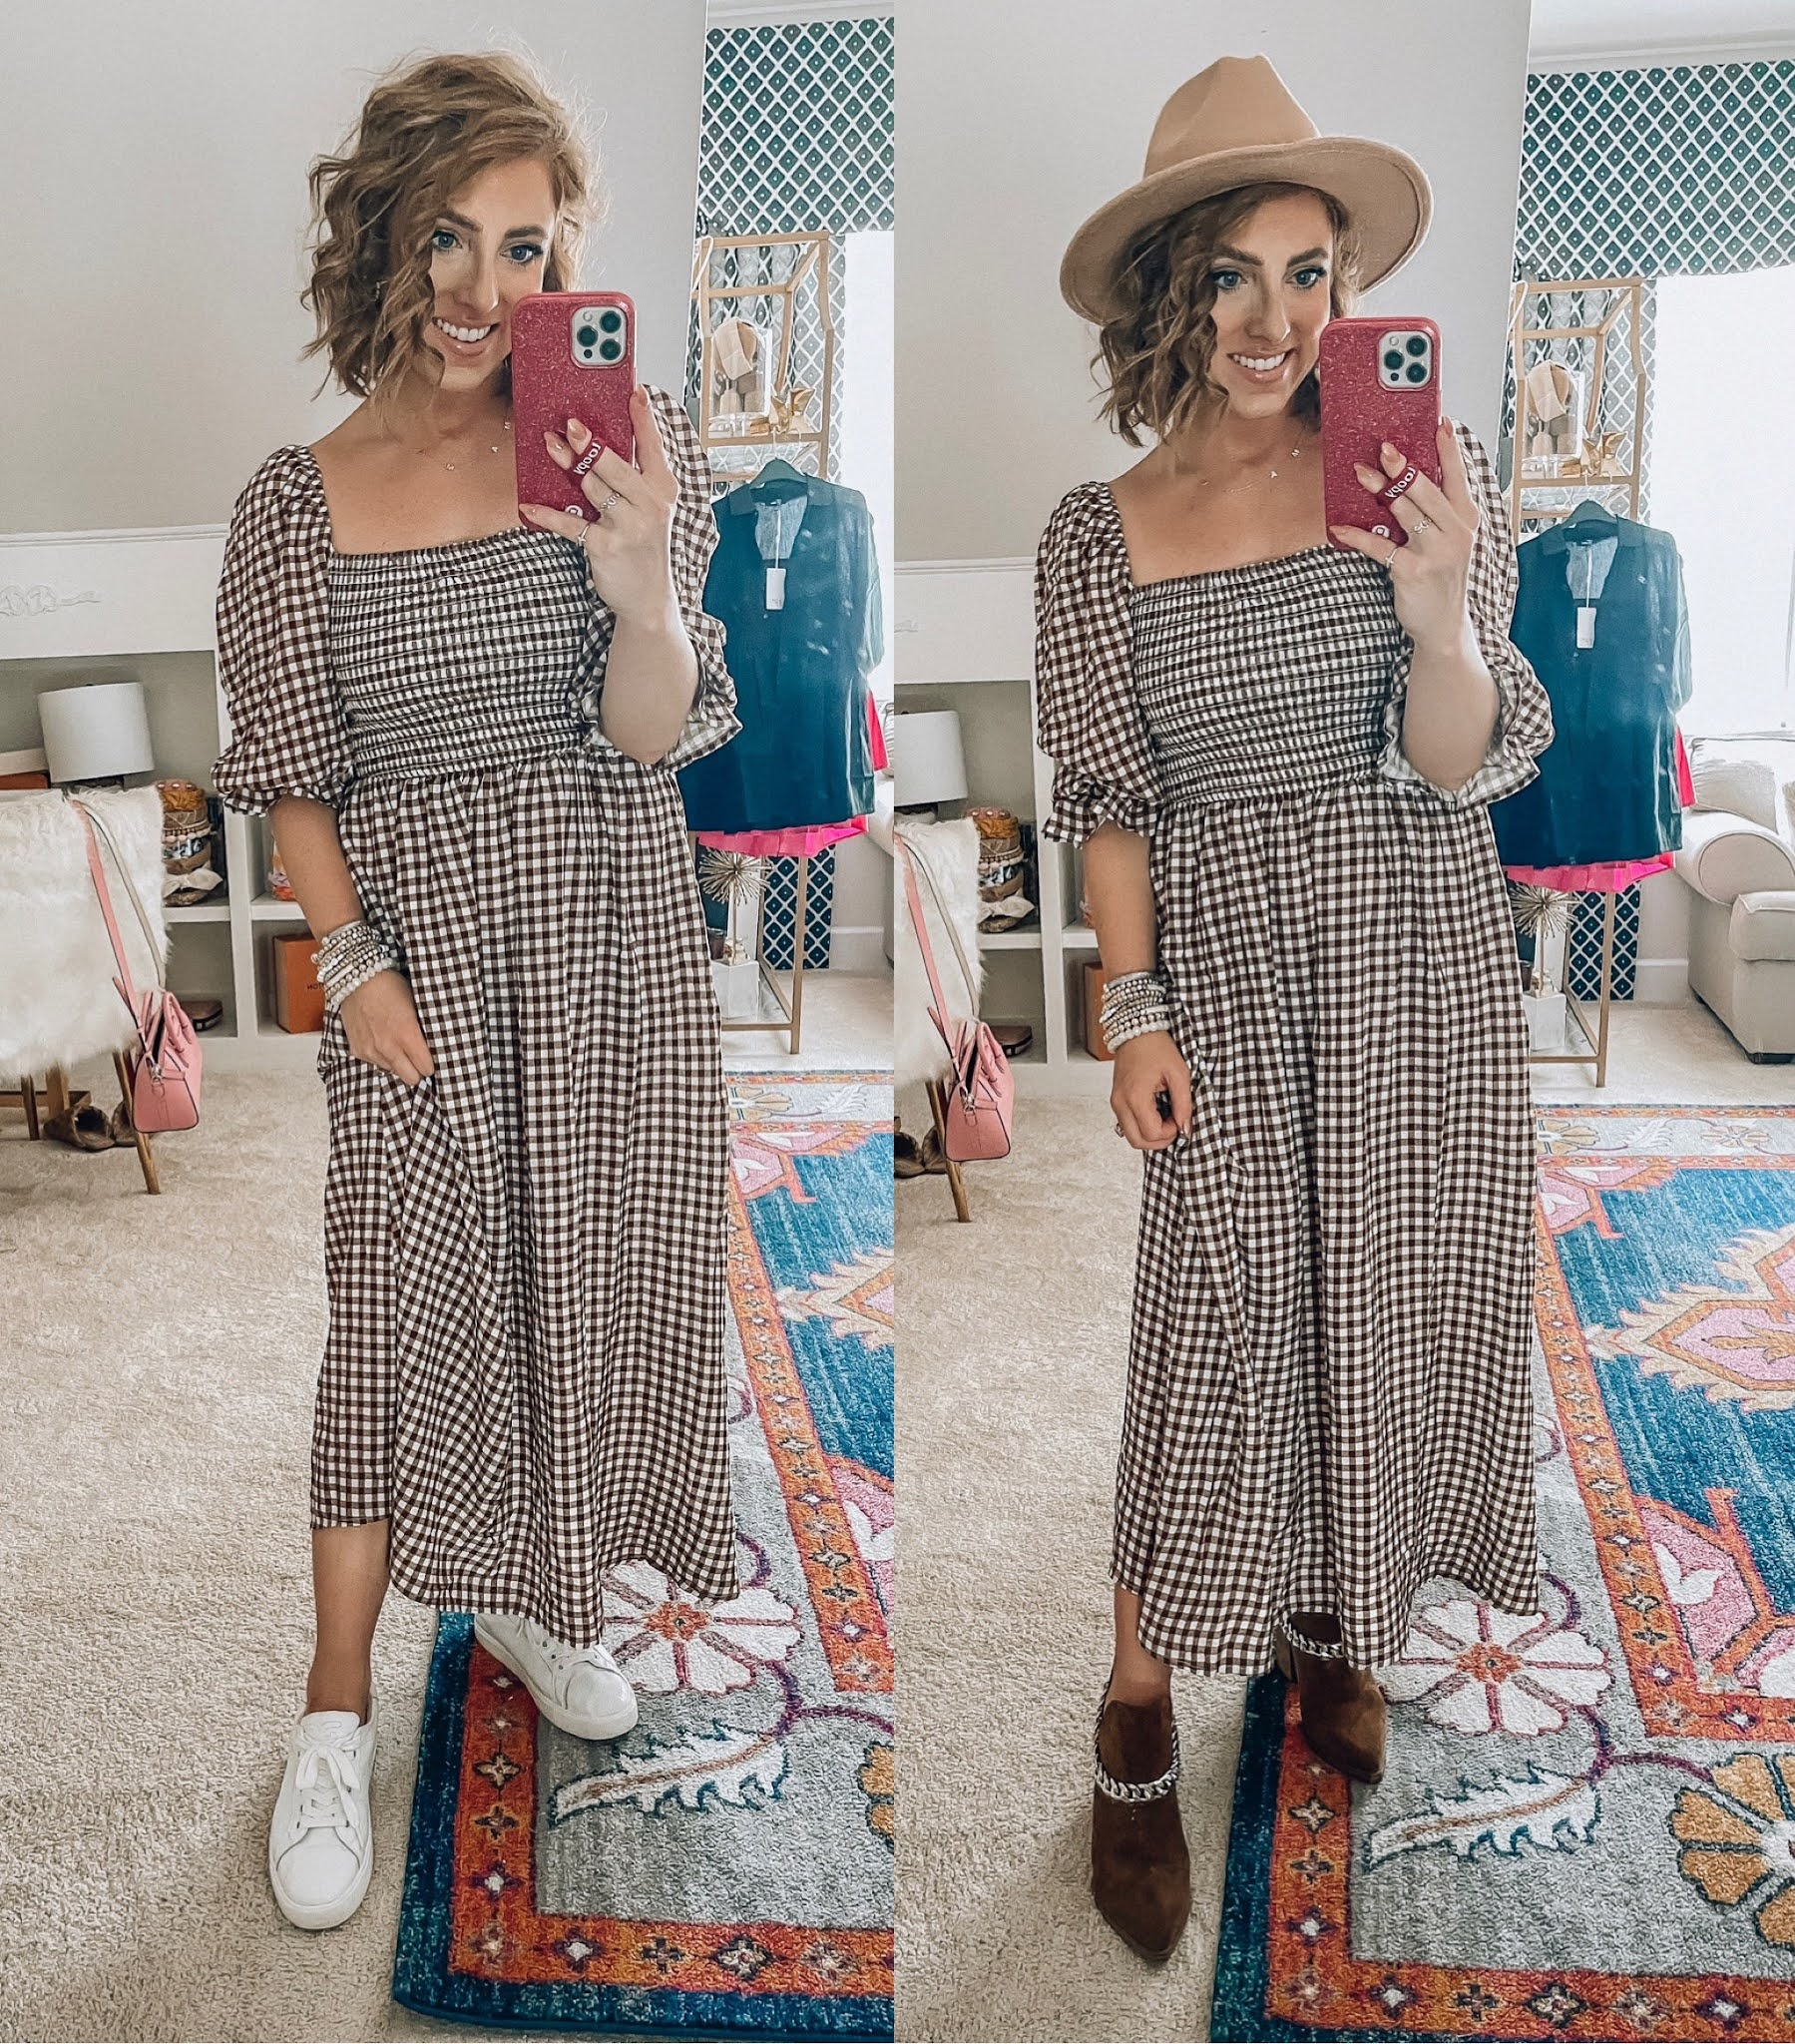 Cute, Versatile Transition Finds from ASOS - Something Delightful Blog #fallstyle #prefallstyle #asos #affordablefashion